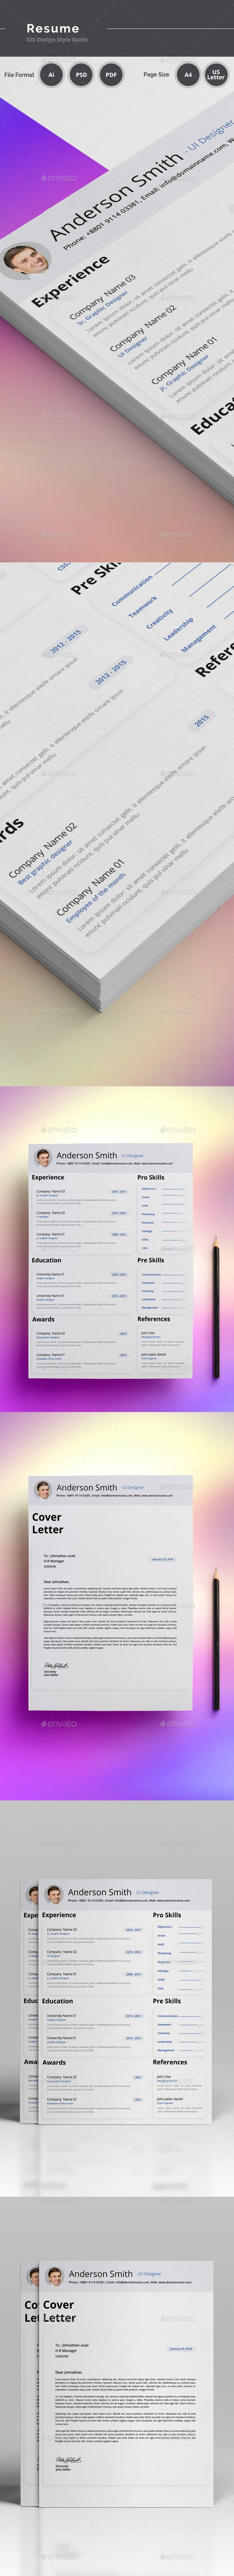 Resume #resume indesign #resume infographic  • Download here → https://graphicriver.net/item/resume/20815318?ref=pxcr